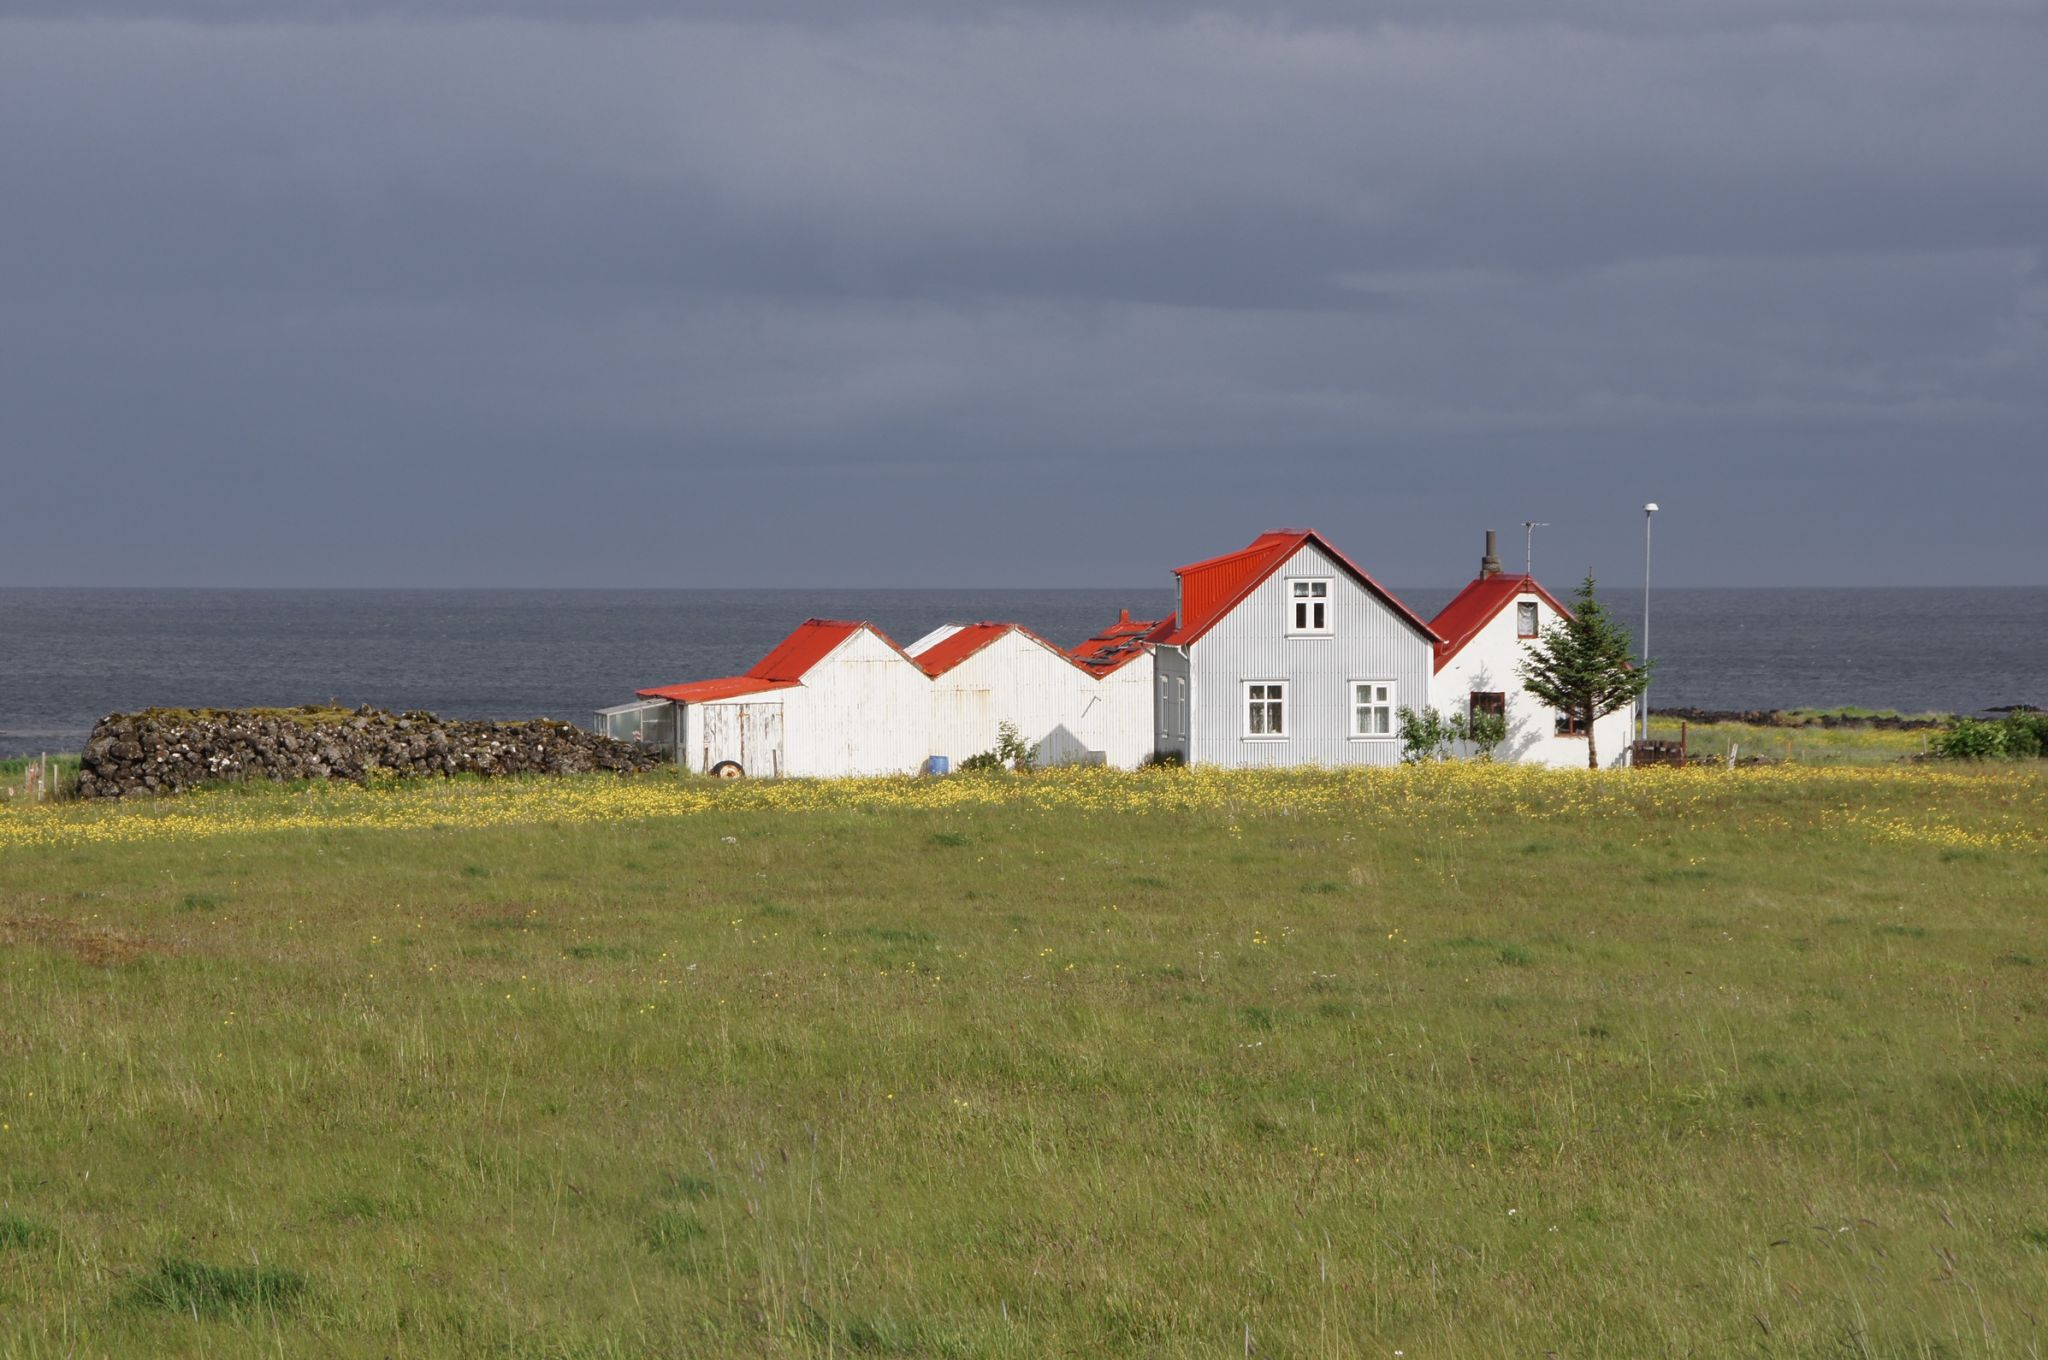 Red roof farm, Iceland